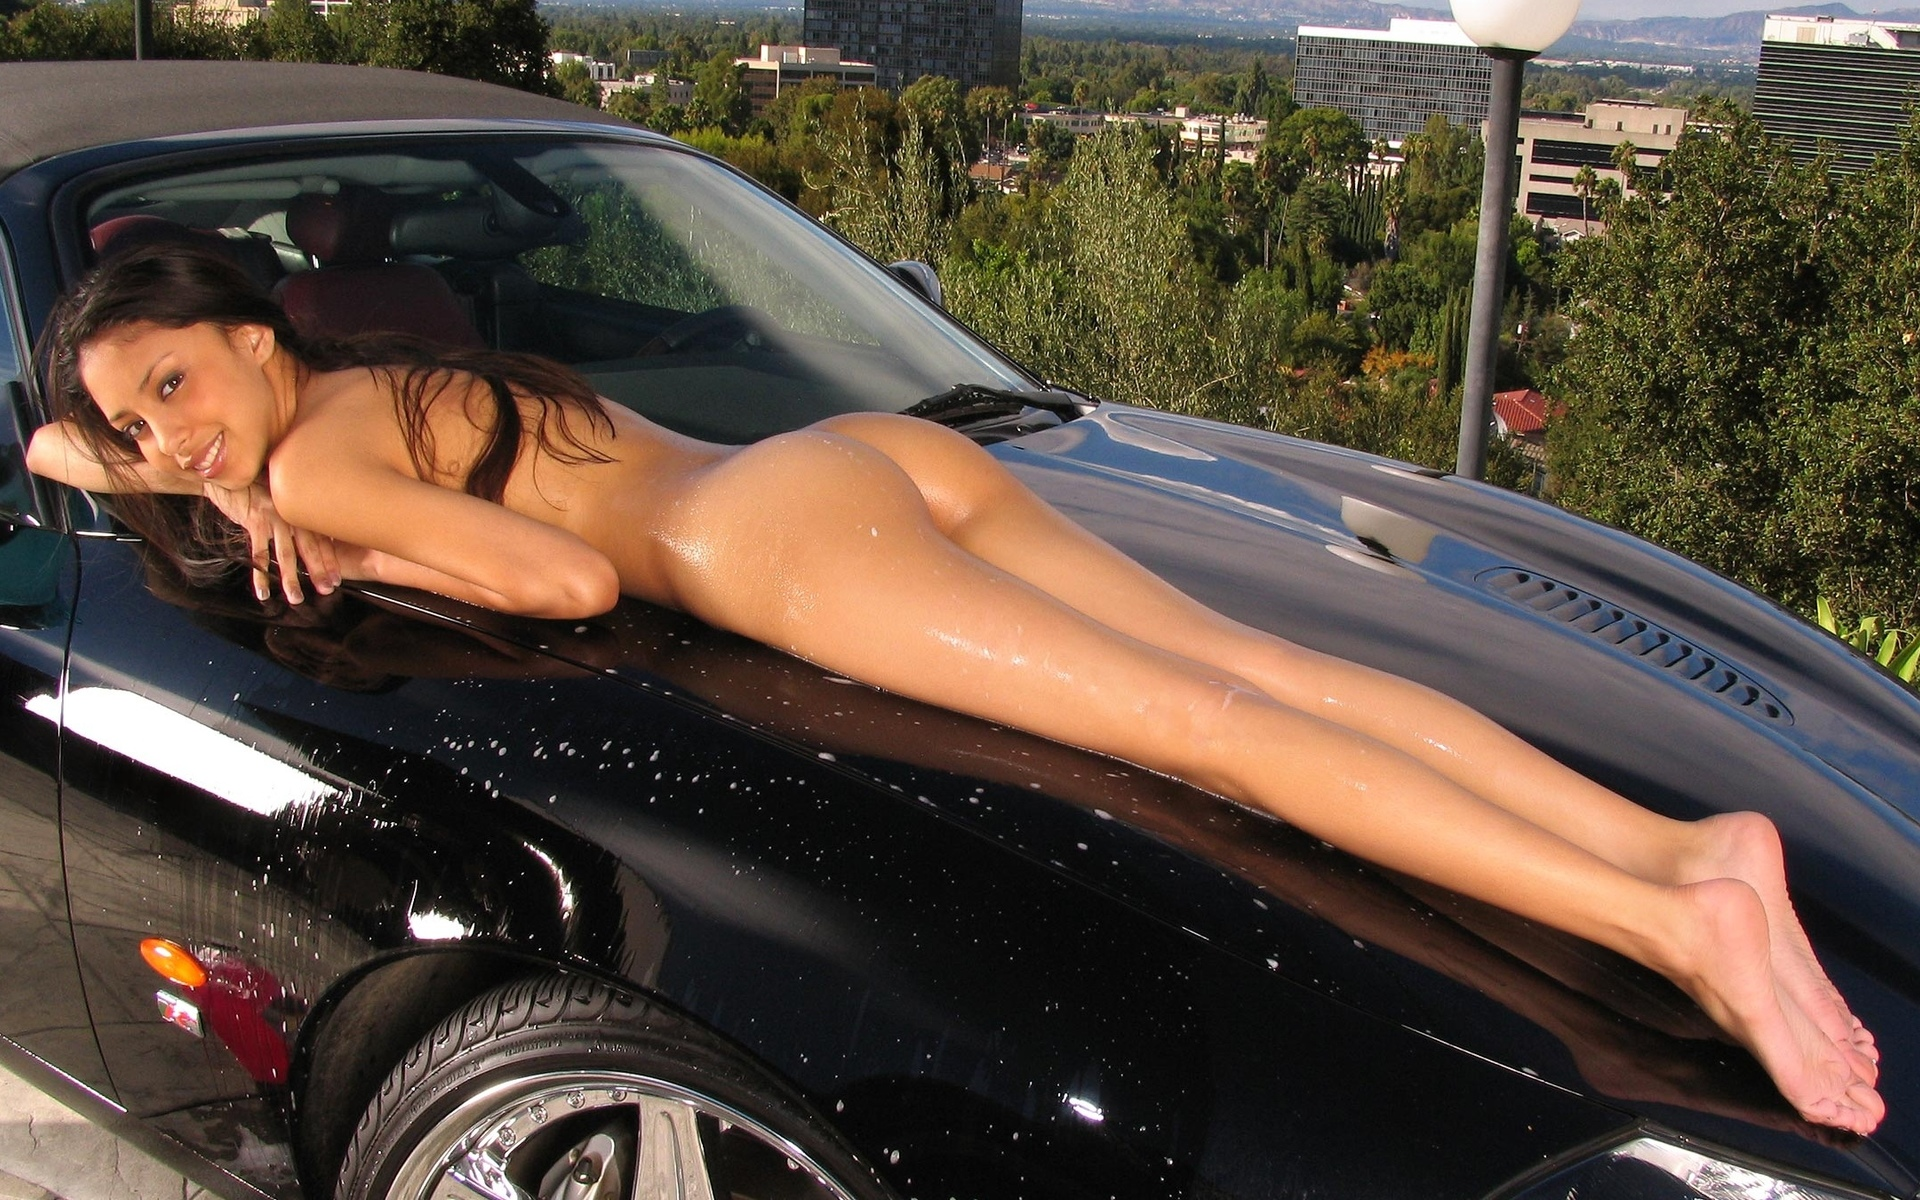 Nude car import girls, keisha knight pulliam in thong in the nude